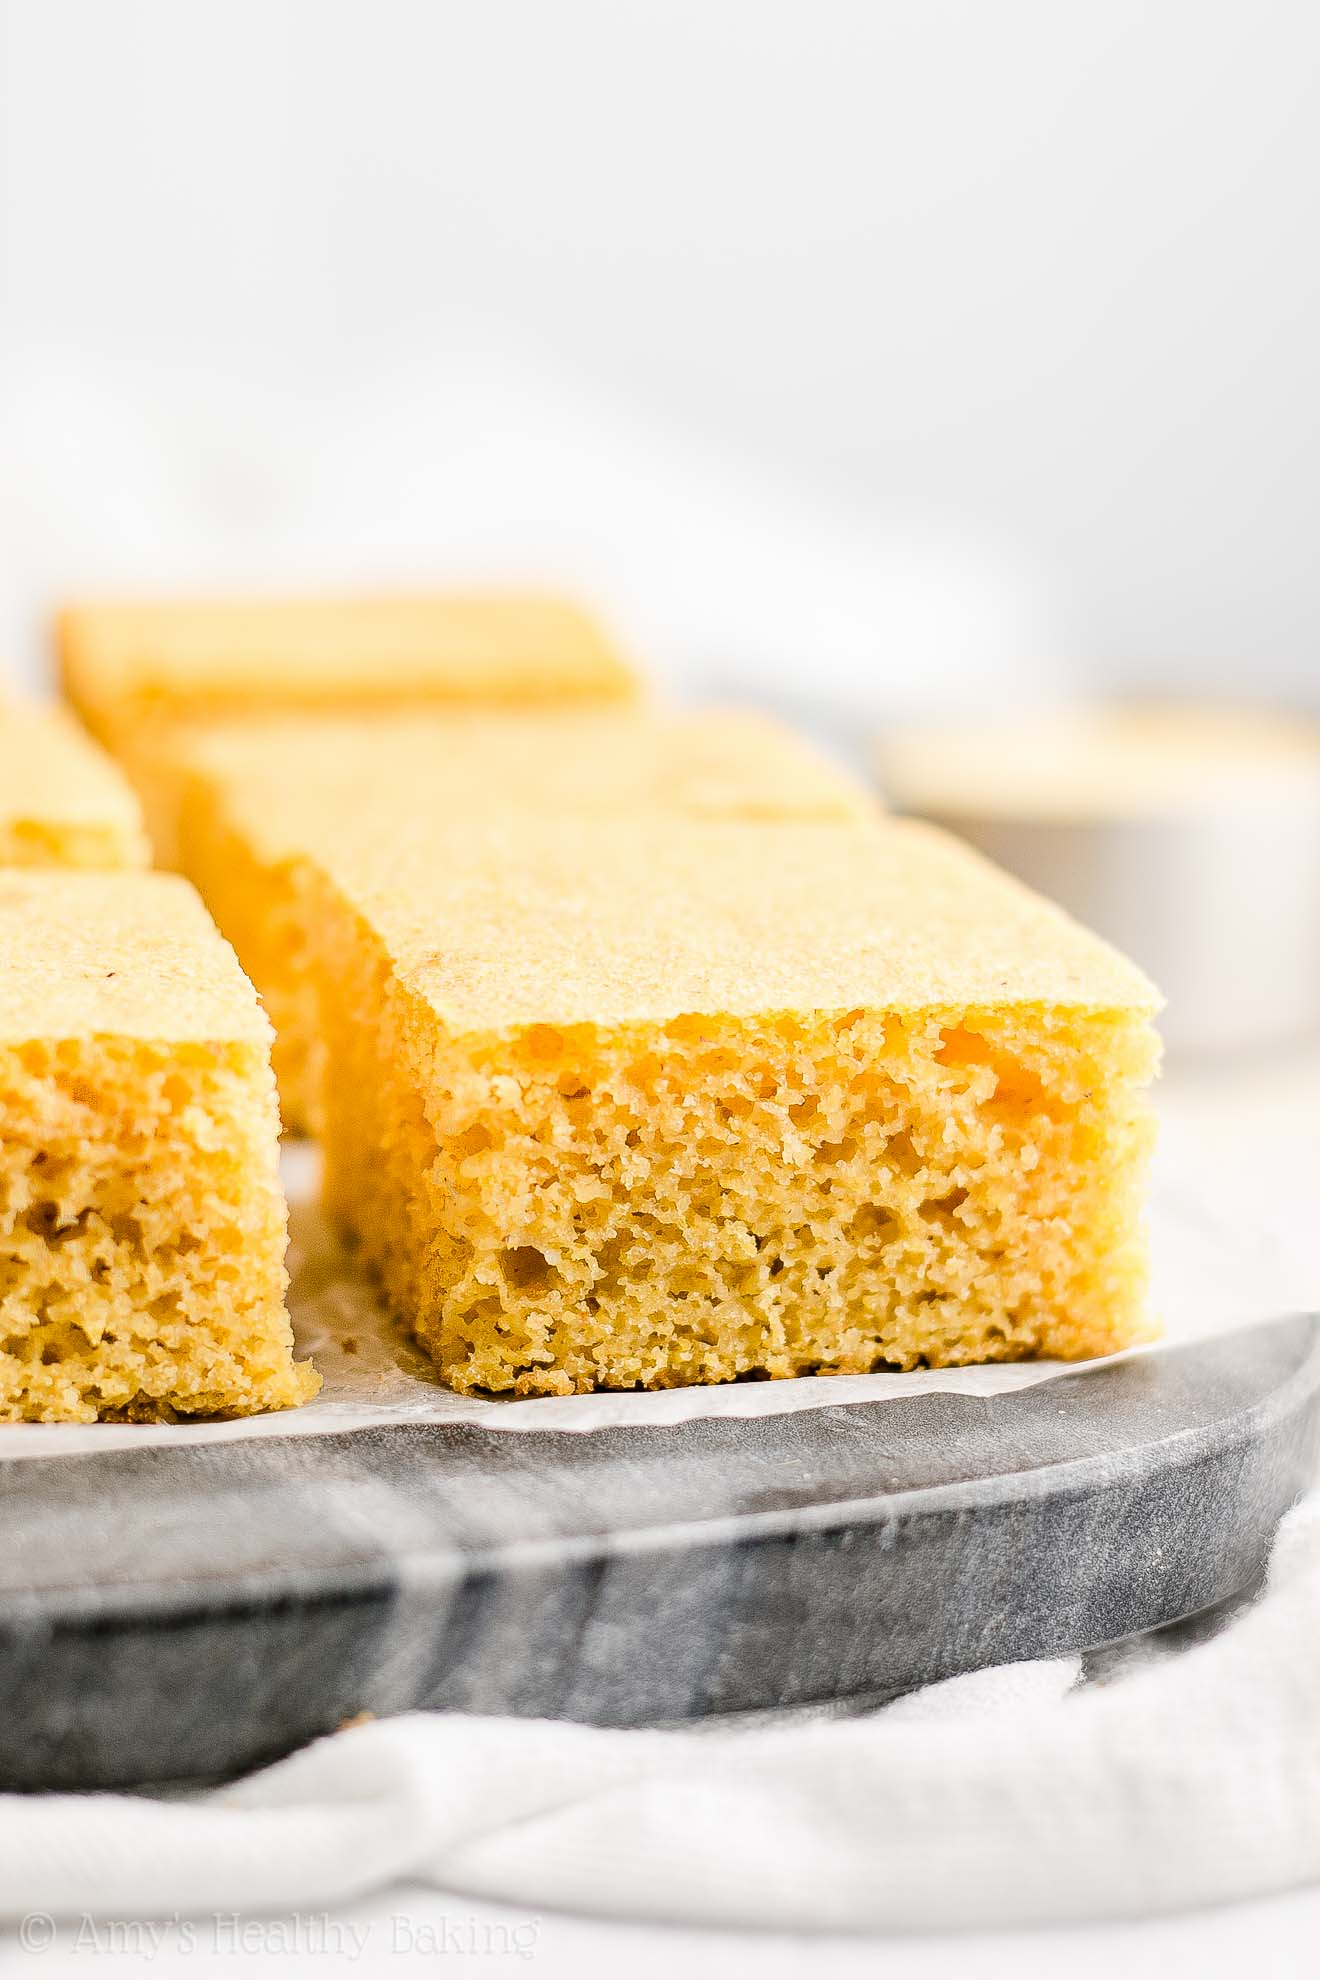 Easy Clean Eating Healthy Buttermilk Cornbread with no refined sugar